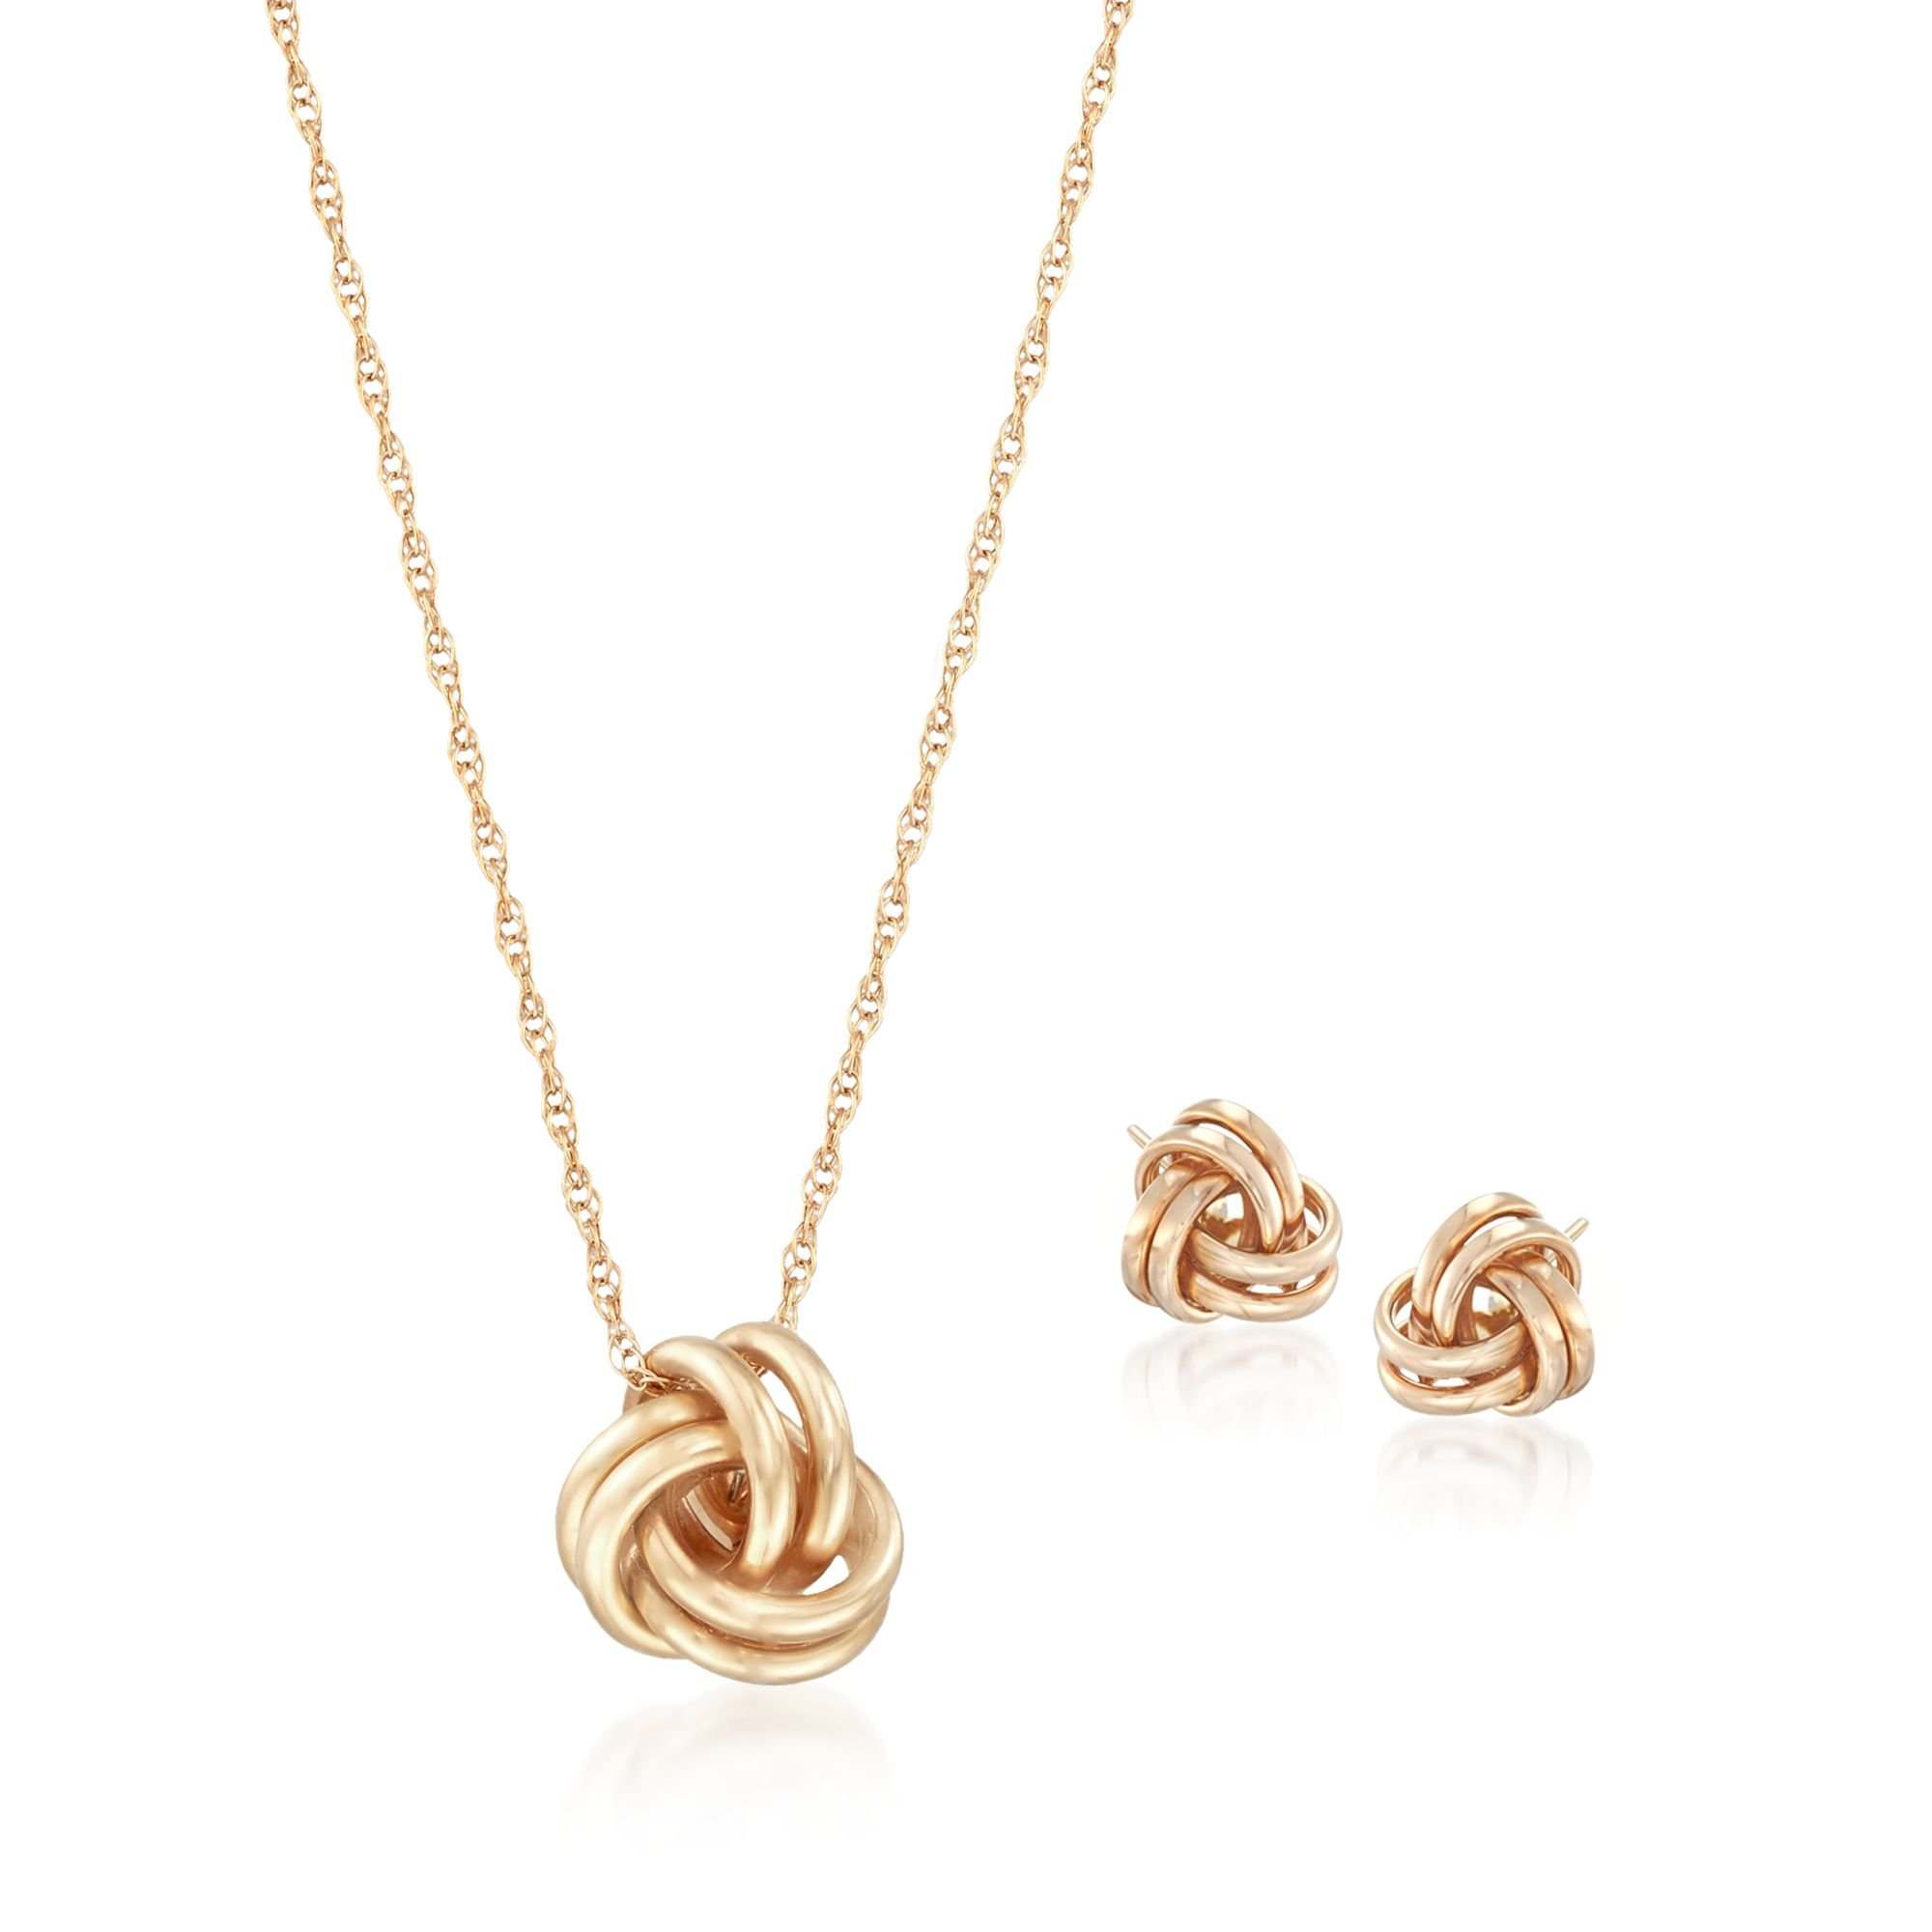 Ross-Simons 14kt Yellow Gold Love Knot Jewelry Set: Necklace and Earrings